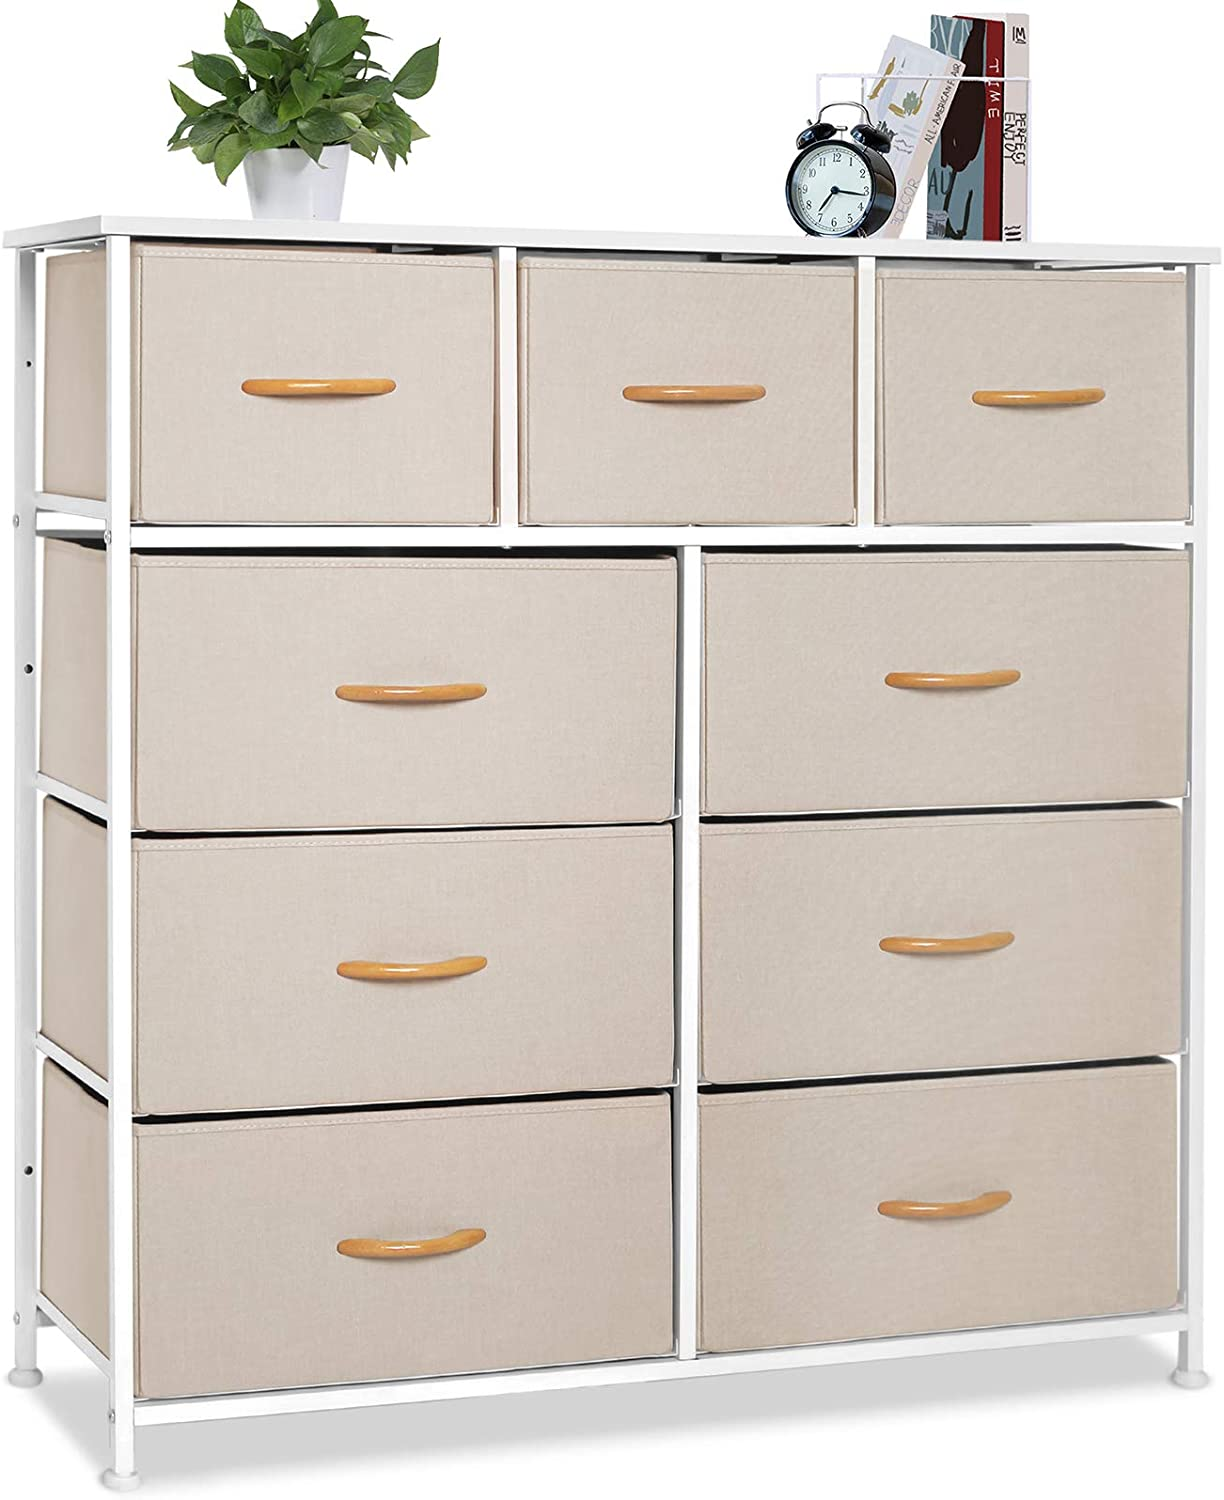 Bigroof Dresser with Drawers Storage f Jacksonville Mall Dealing full price reduction Organizer Fabric